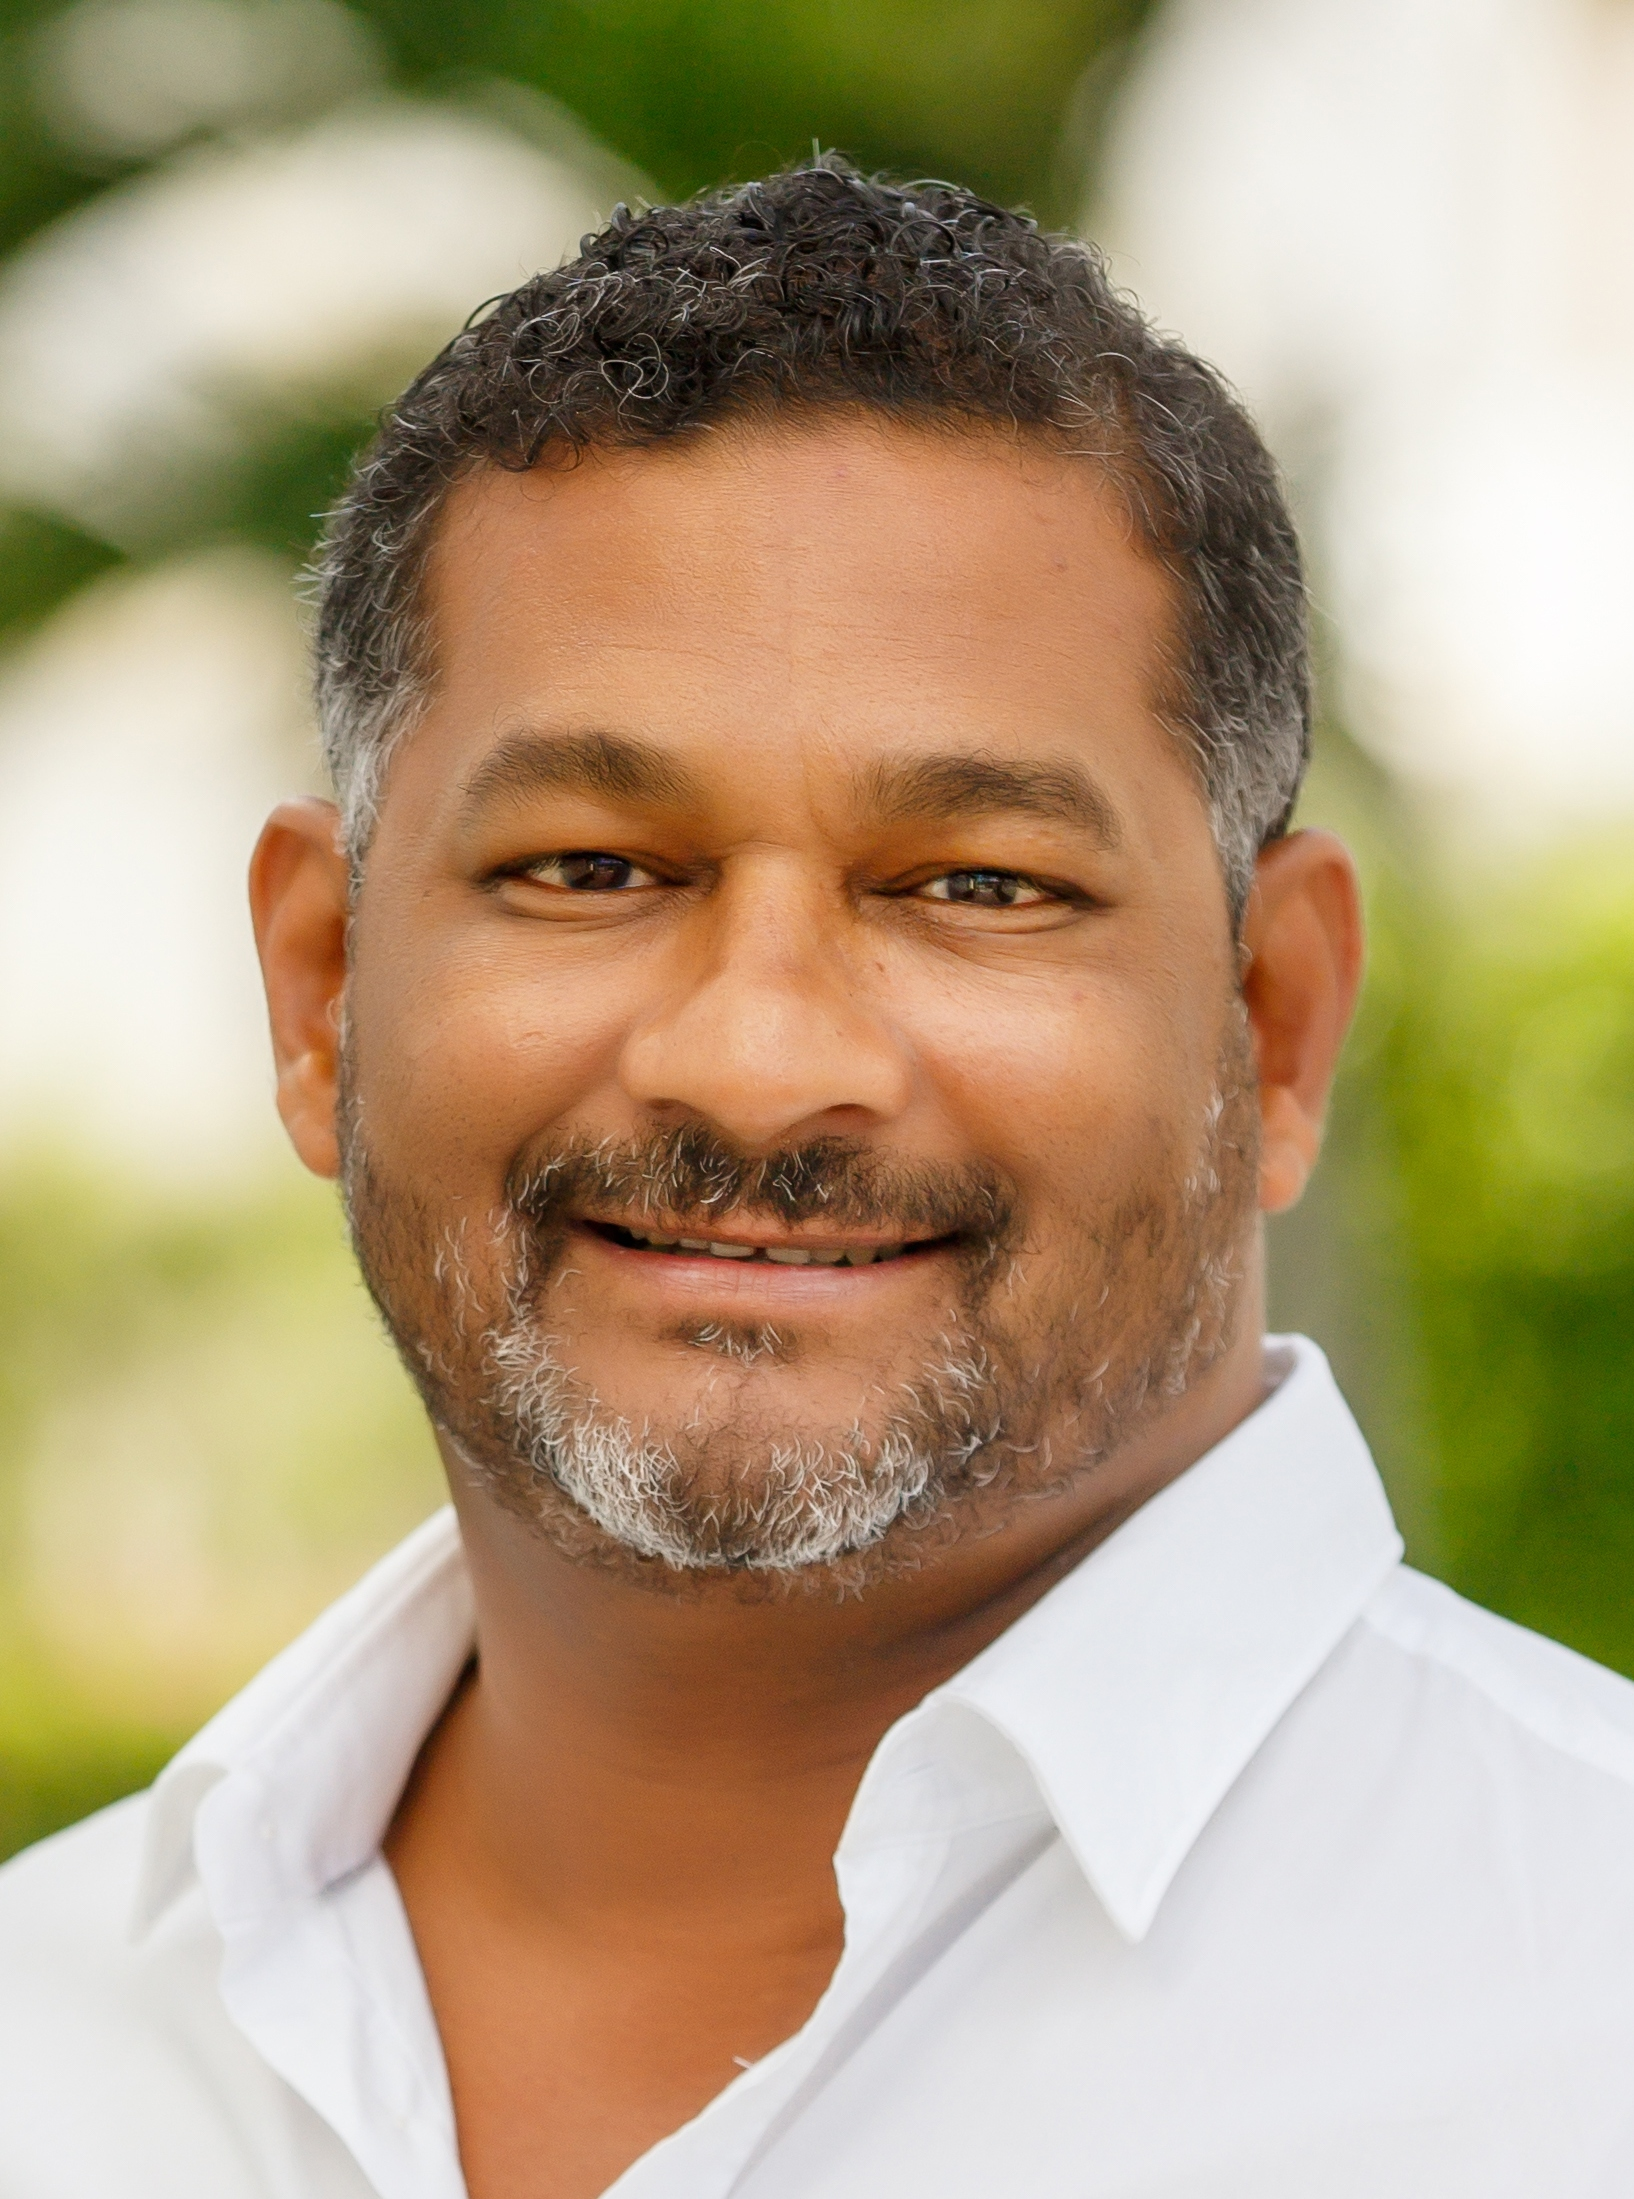 Richard Sankar